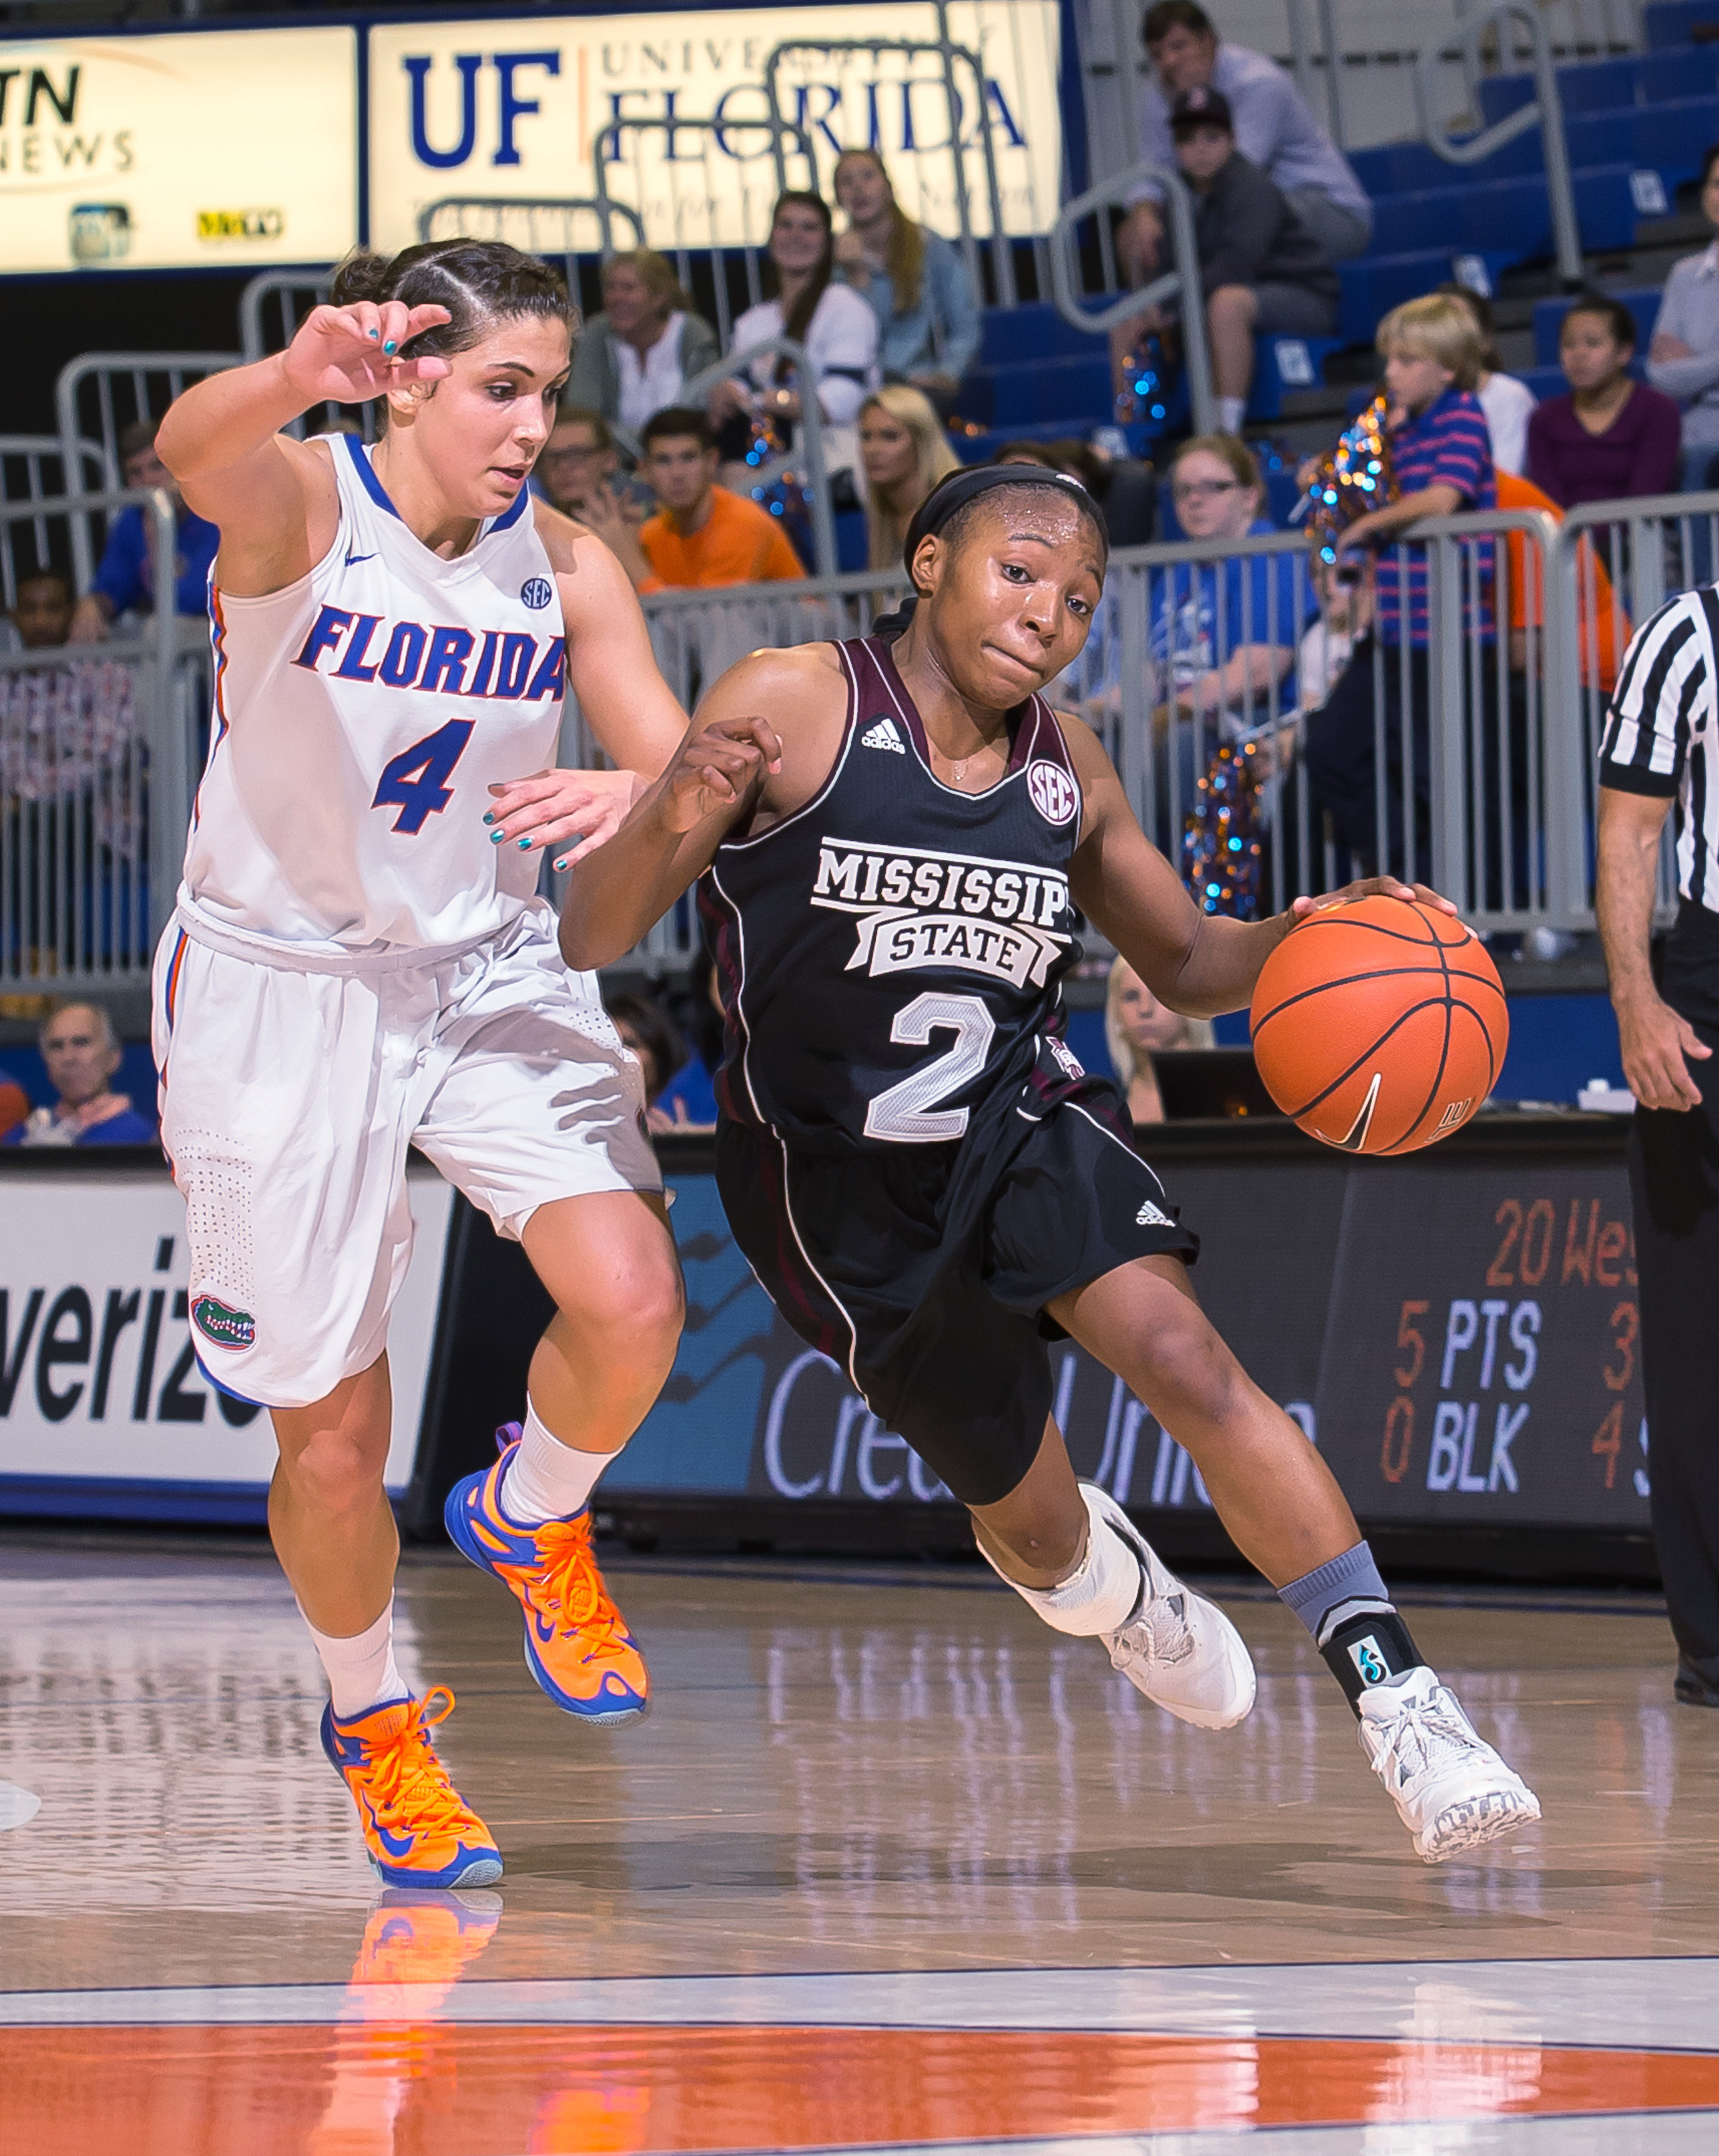 Mississippi State guard Morgan William (2) dribbles past Florida guard Carlie Needles (4) during the second half of an NCAA college basketball game in Gainesville, Fla. on Sunday, Jan. 3, 2016. Mississippi State won 76-70. (AP Photo/Ronald Irby)